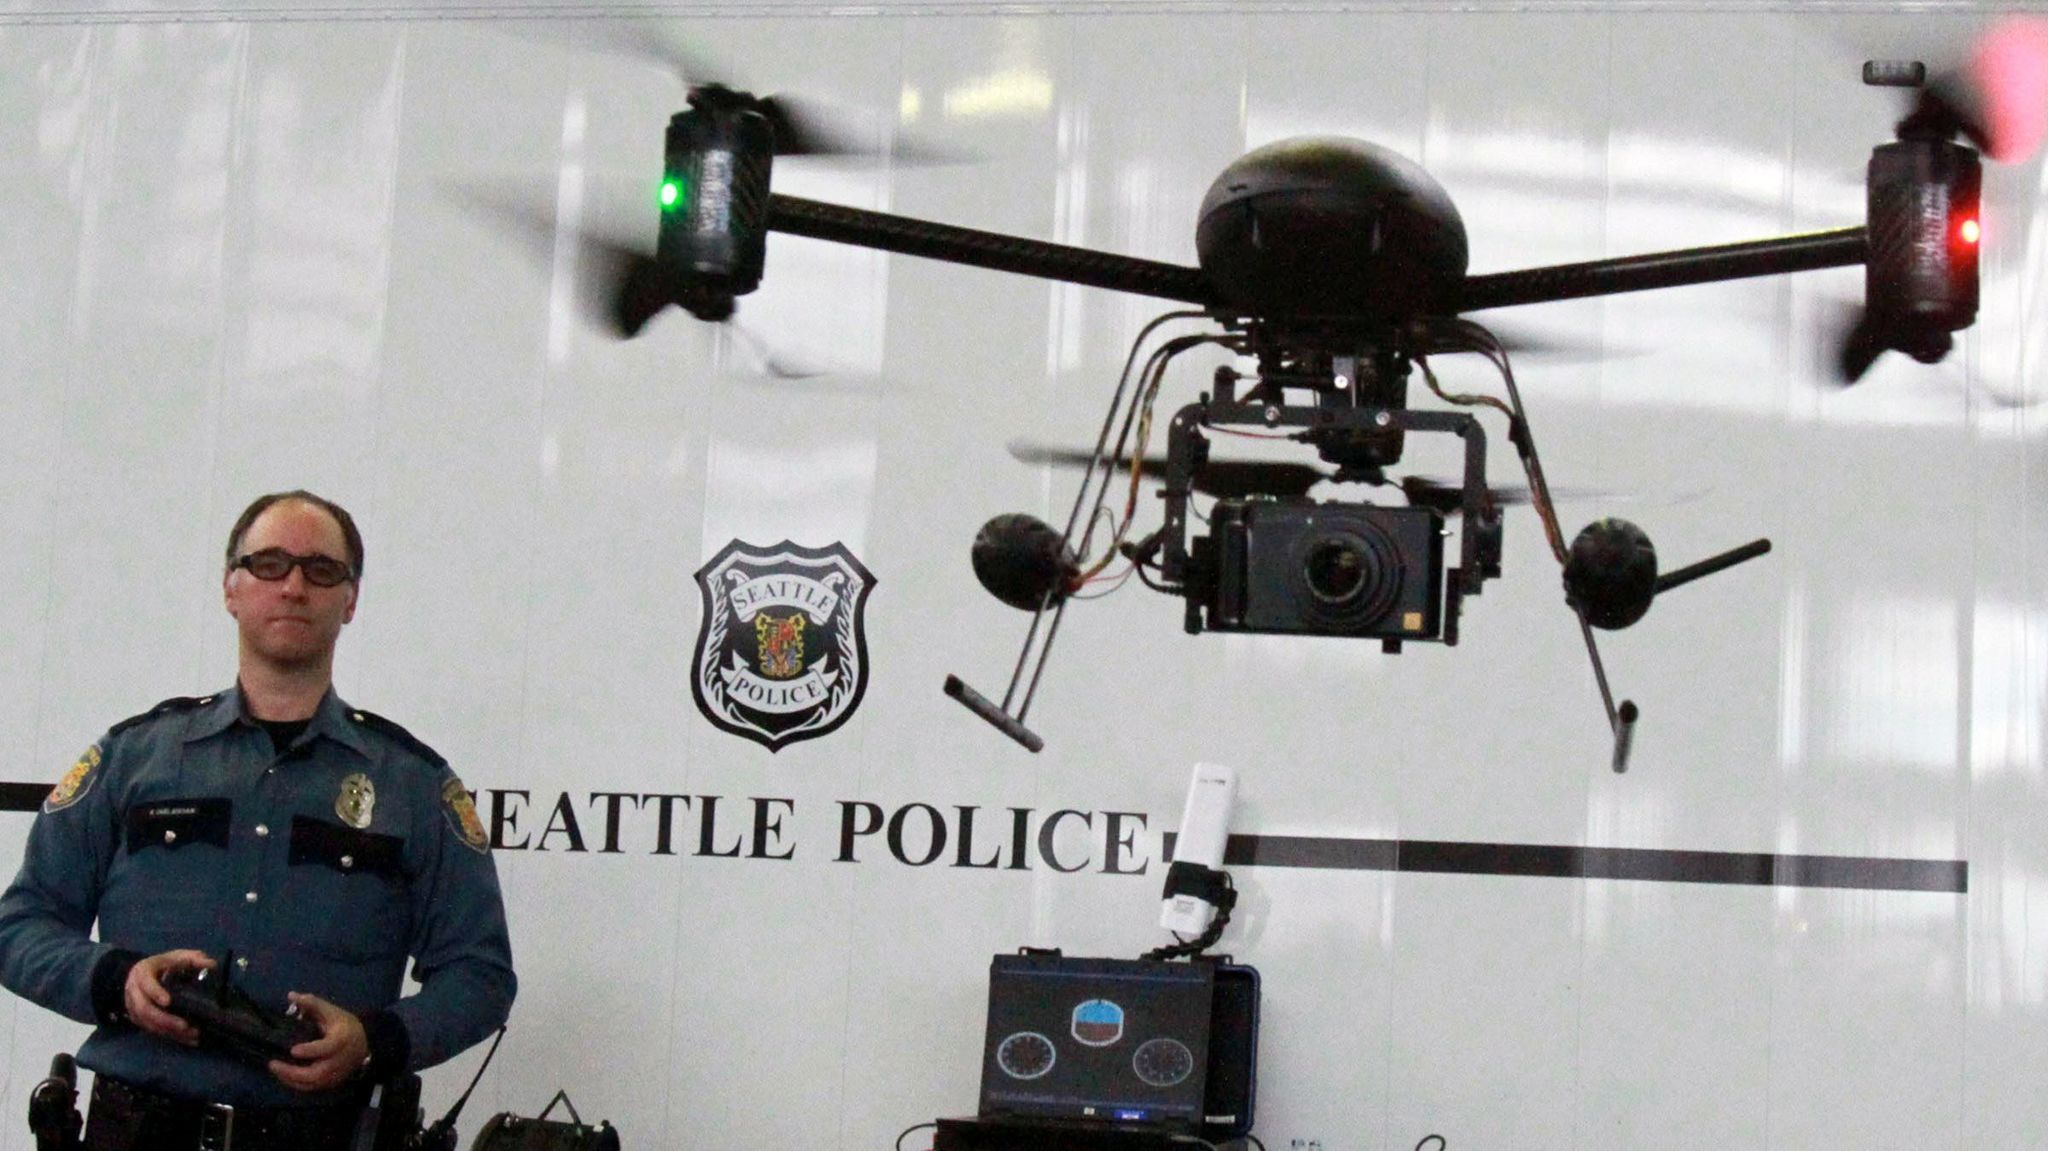 Should the LAPD test drones? Police ask the public to weigh in